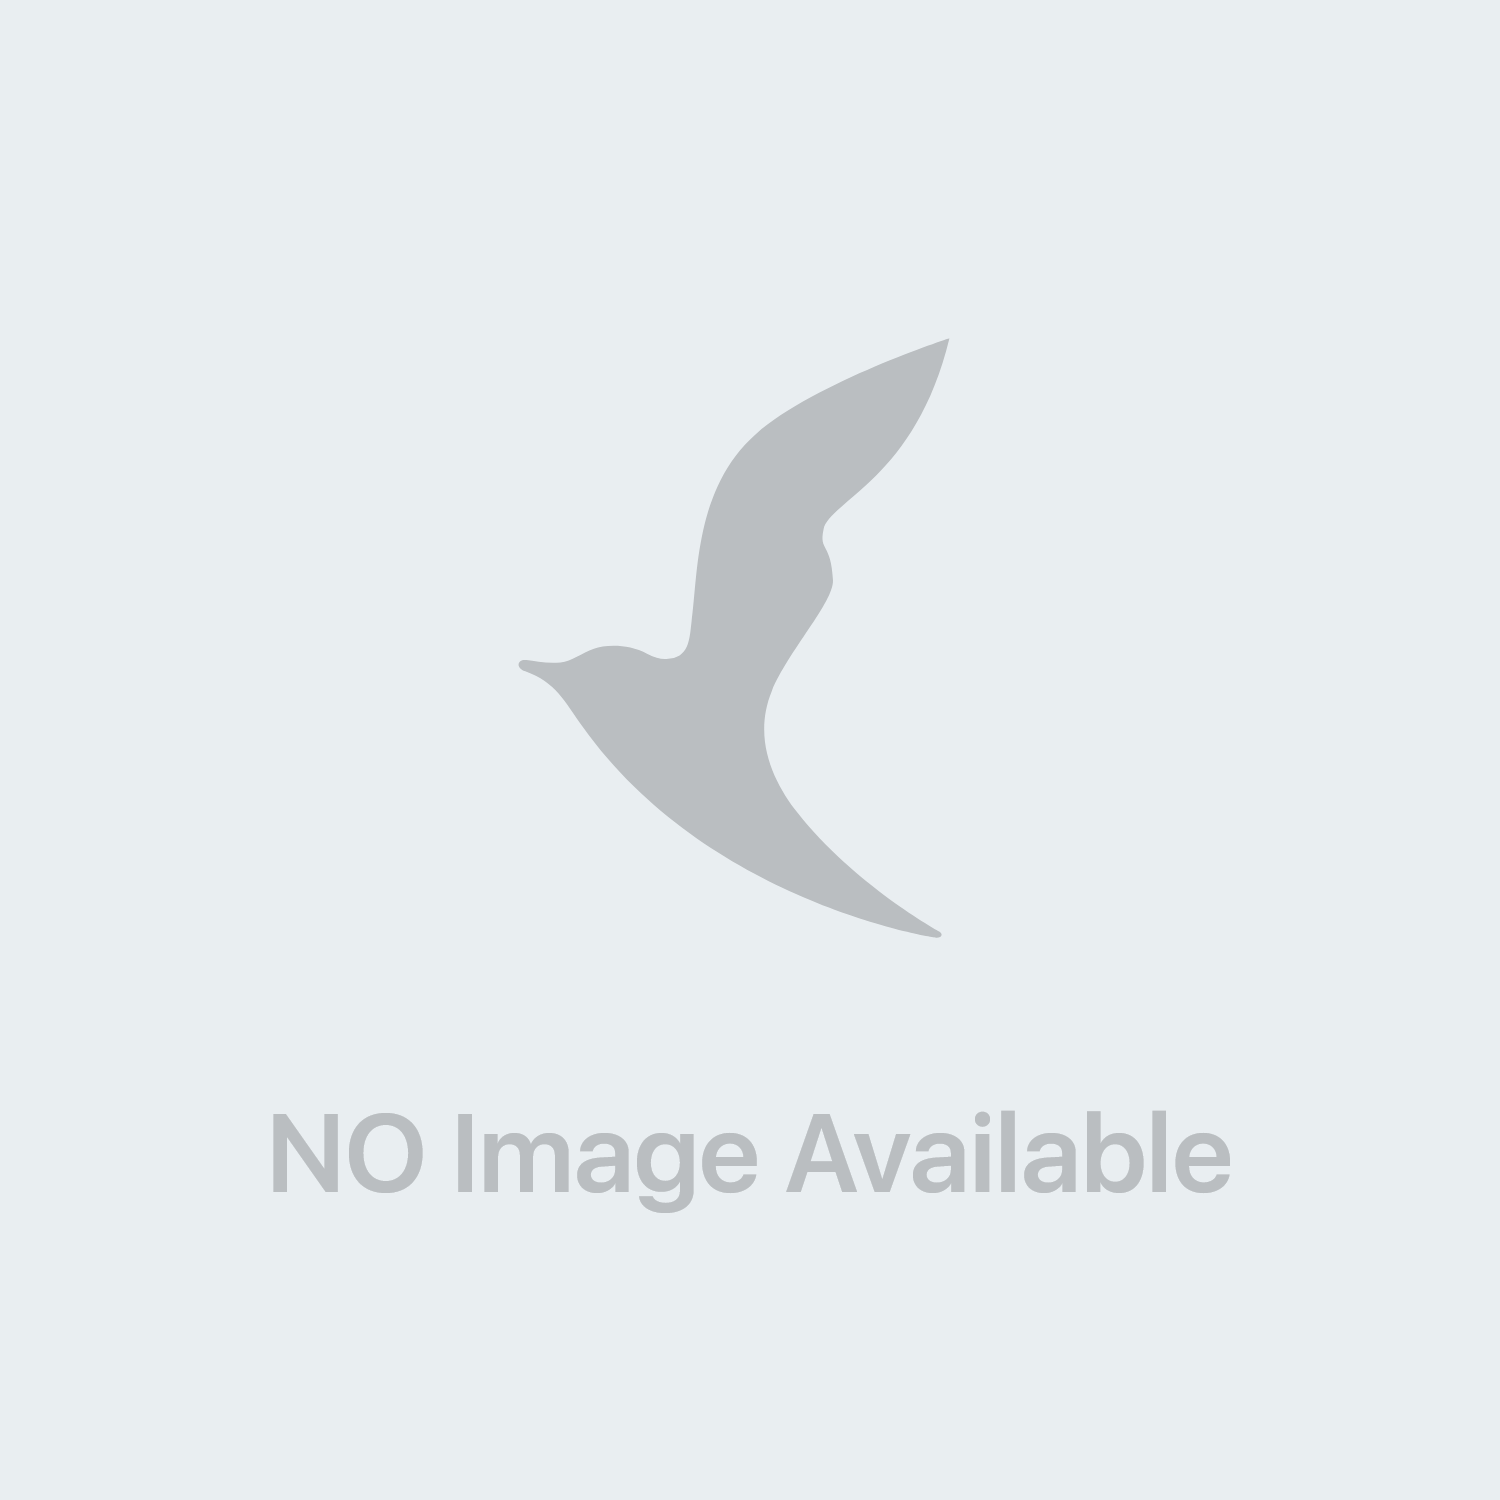 Bush Flower Essences Fiori Australiani Agitation & Calm Per Uso Veterinario Gocce 30 ml